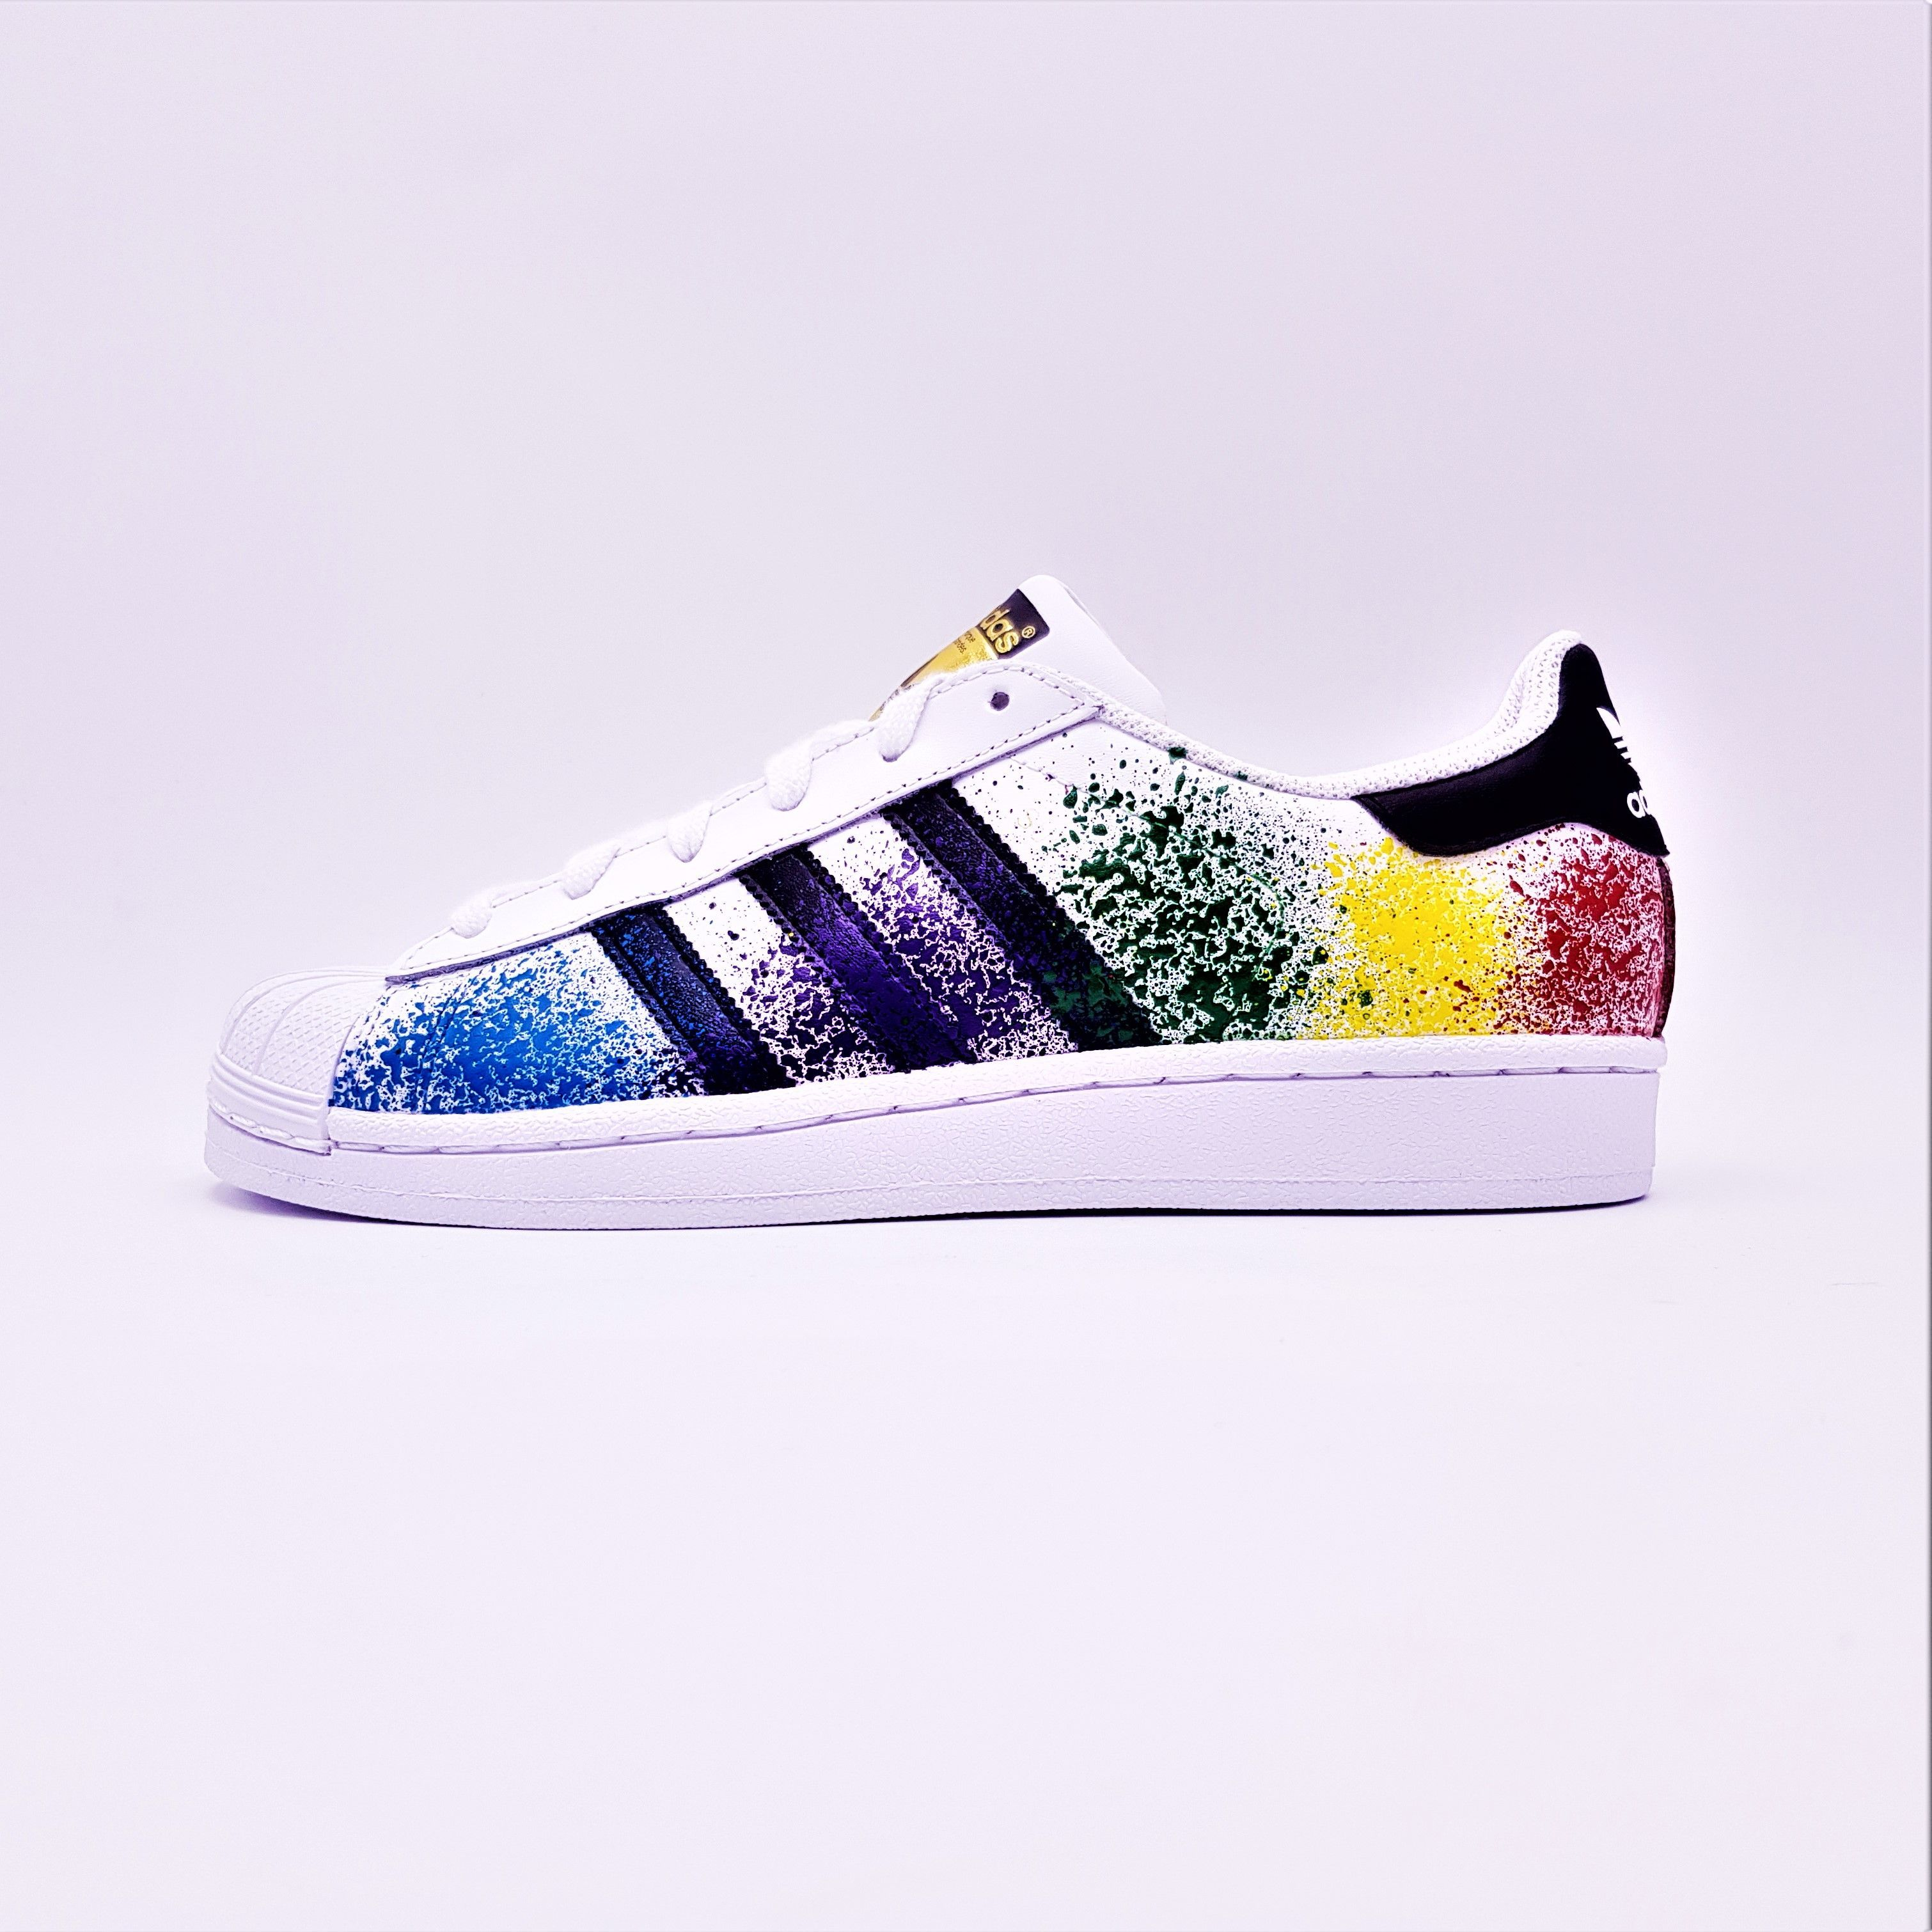 Adidas Color Splash Superstar | Superstar, Adidas et Adidas